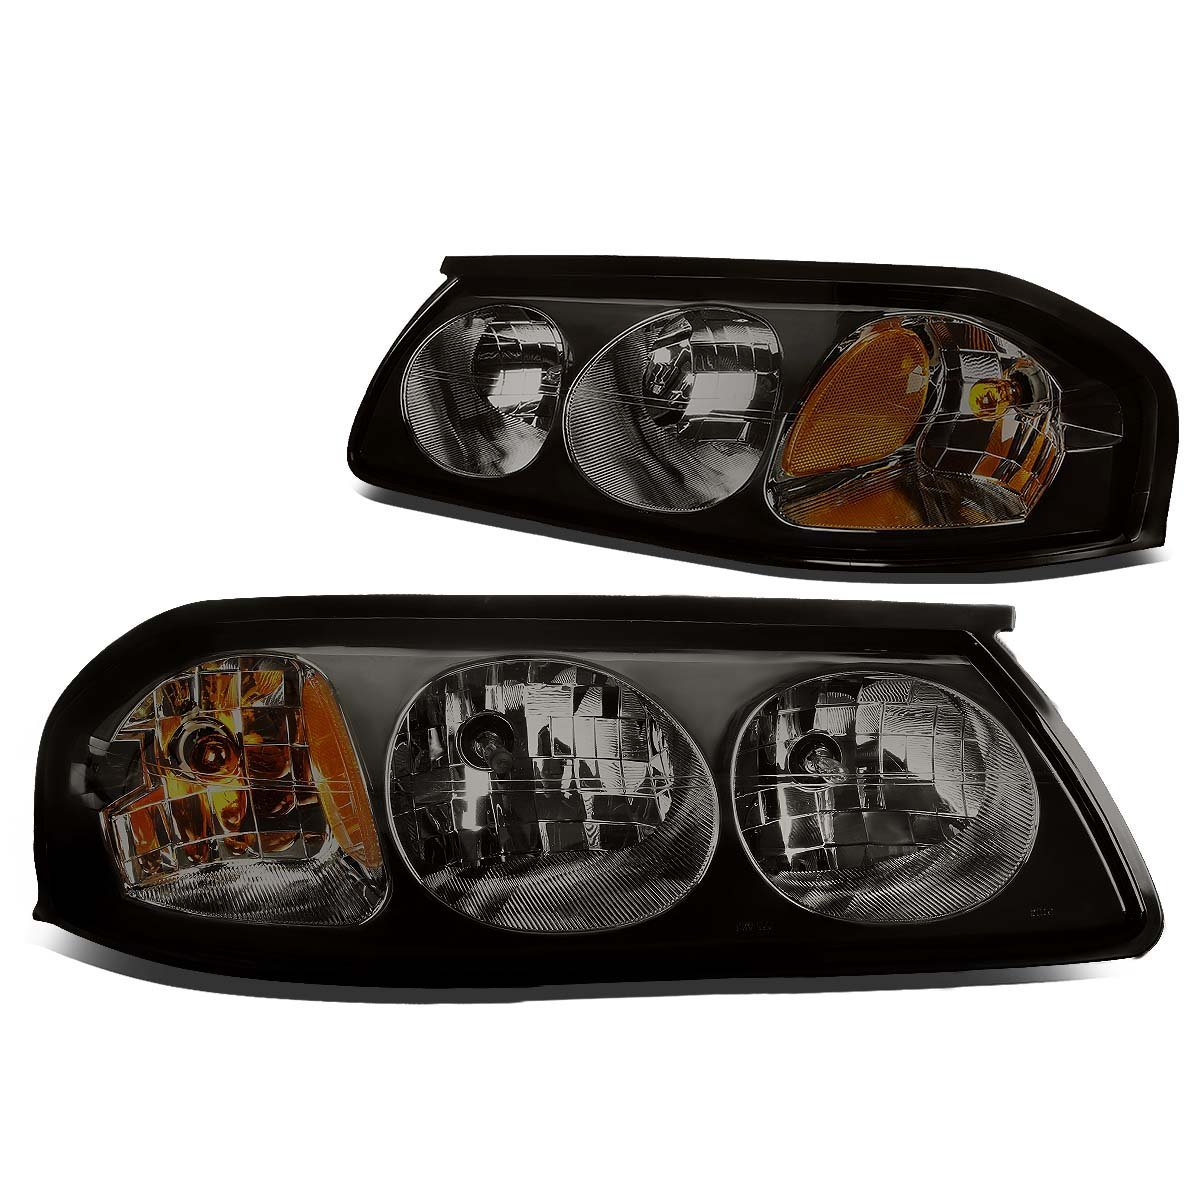 00 05 Chevy Impala Euro Style Replacement Headlights Set Smoked Click To Enlarge